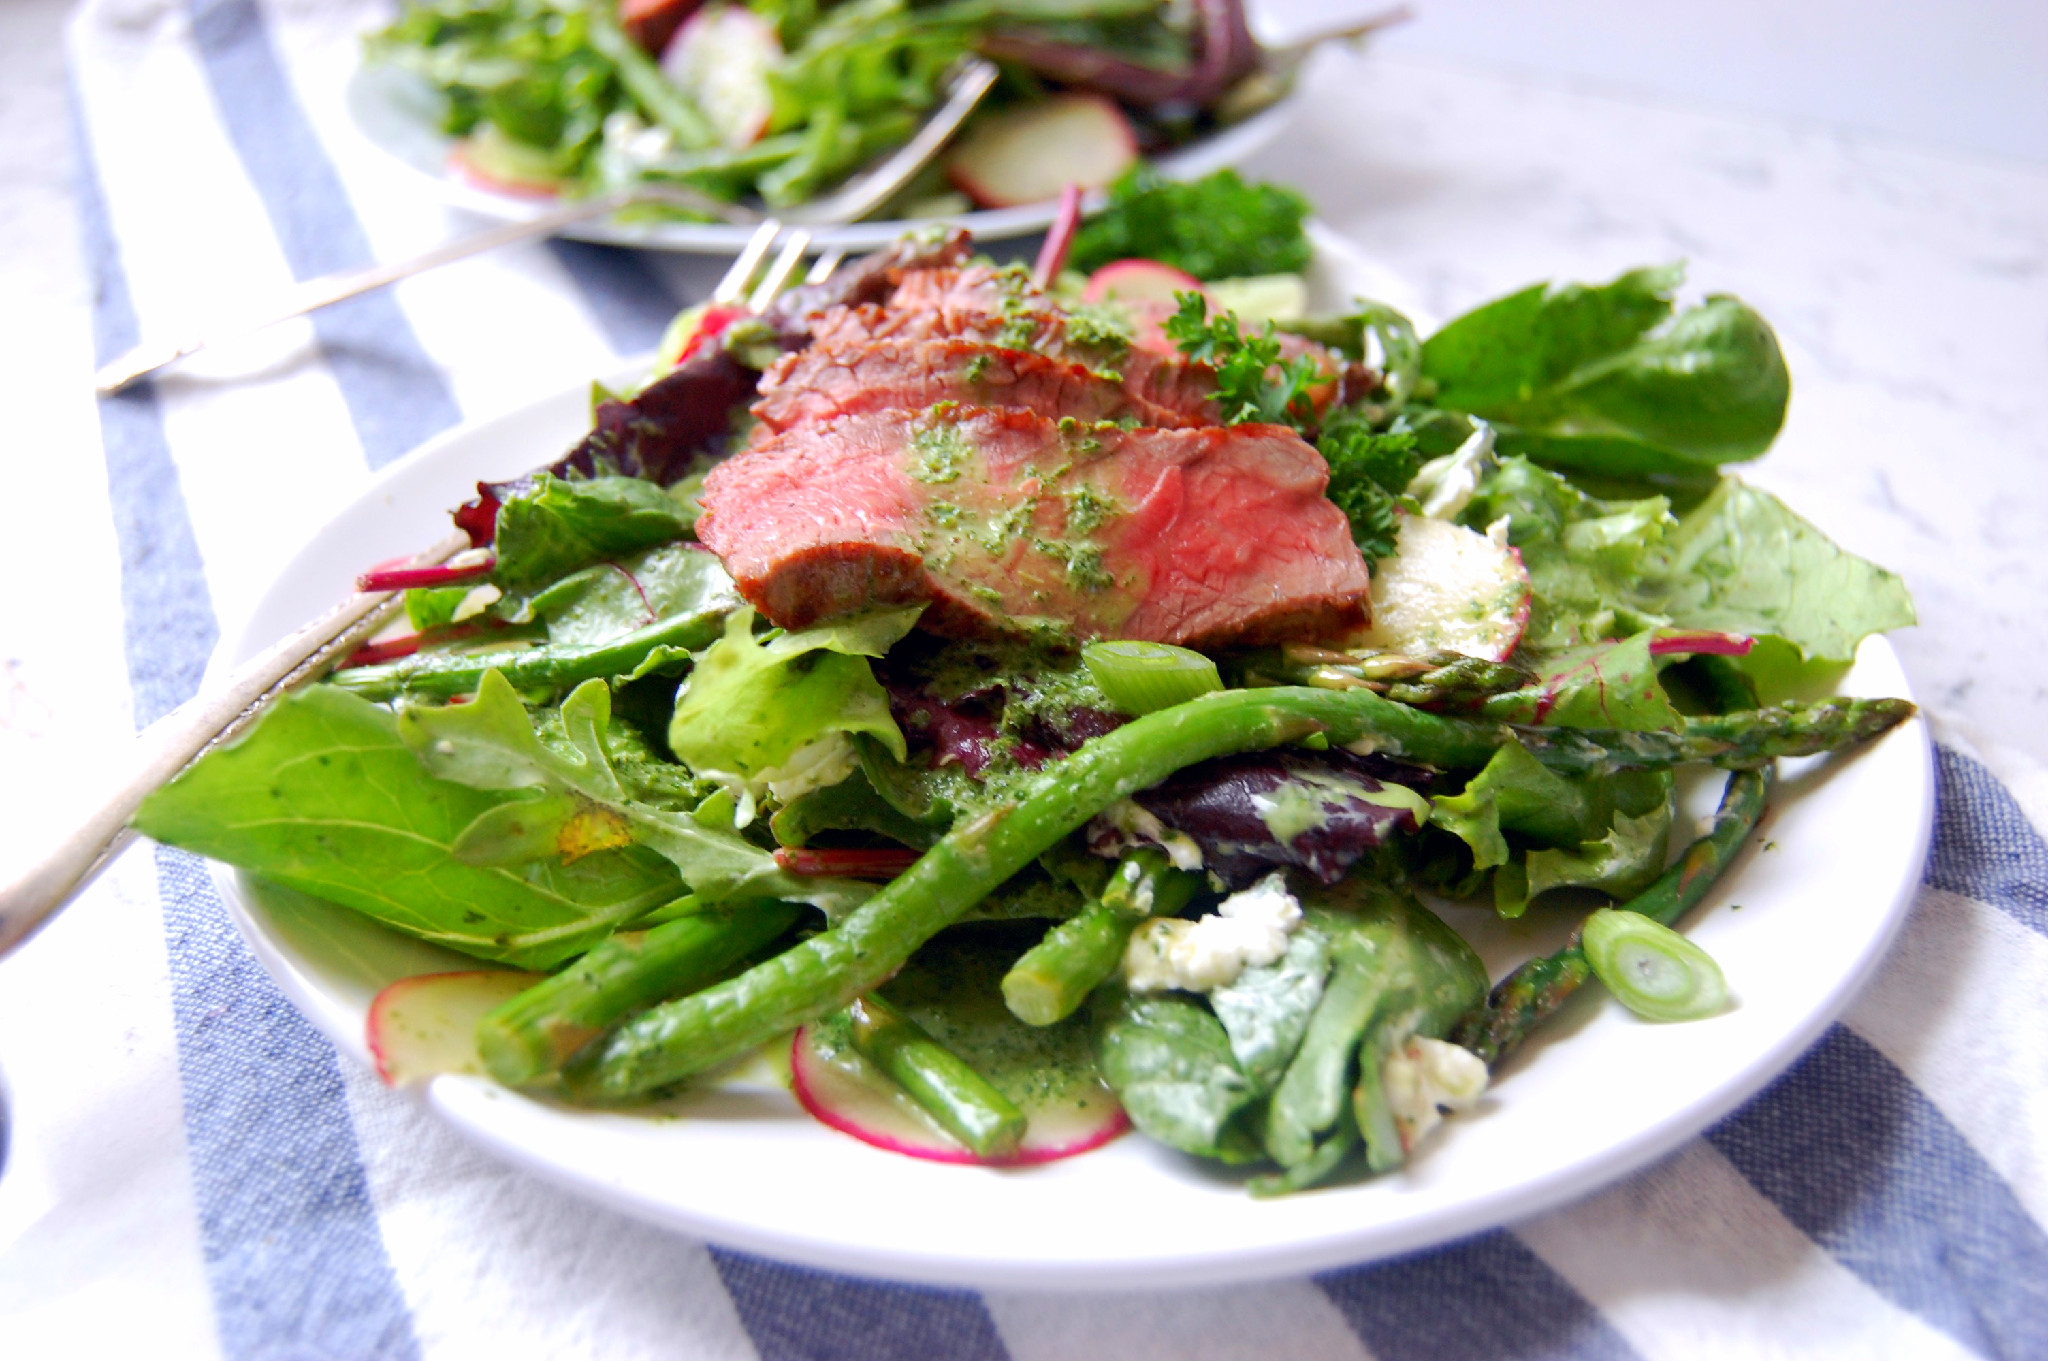 Steak Salad with Asparagus, Radishes, Goat Cheese, and Spring Onions | uprootkitchen.com